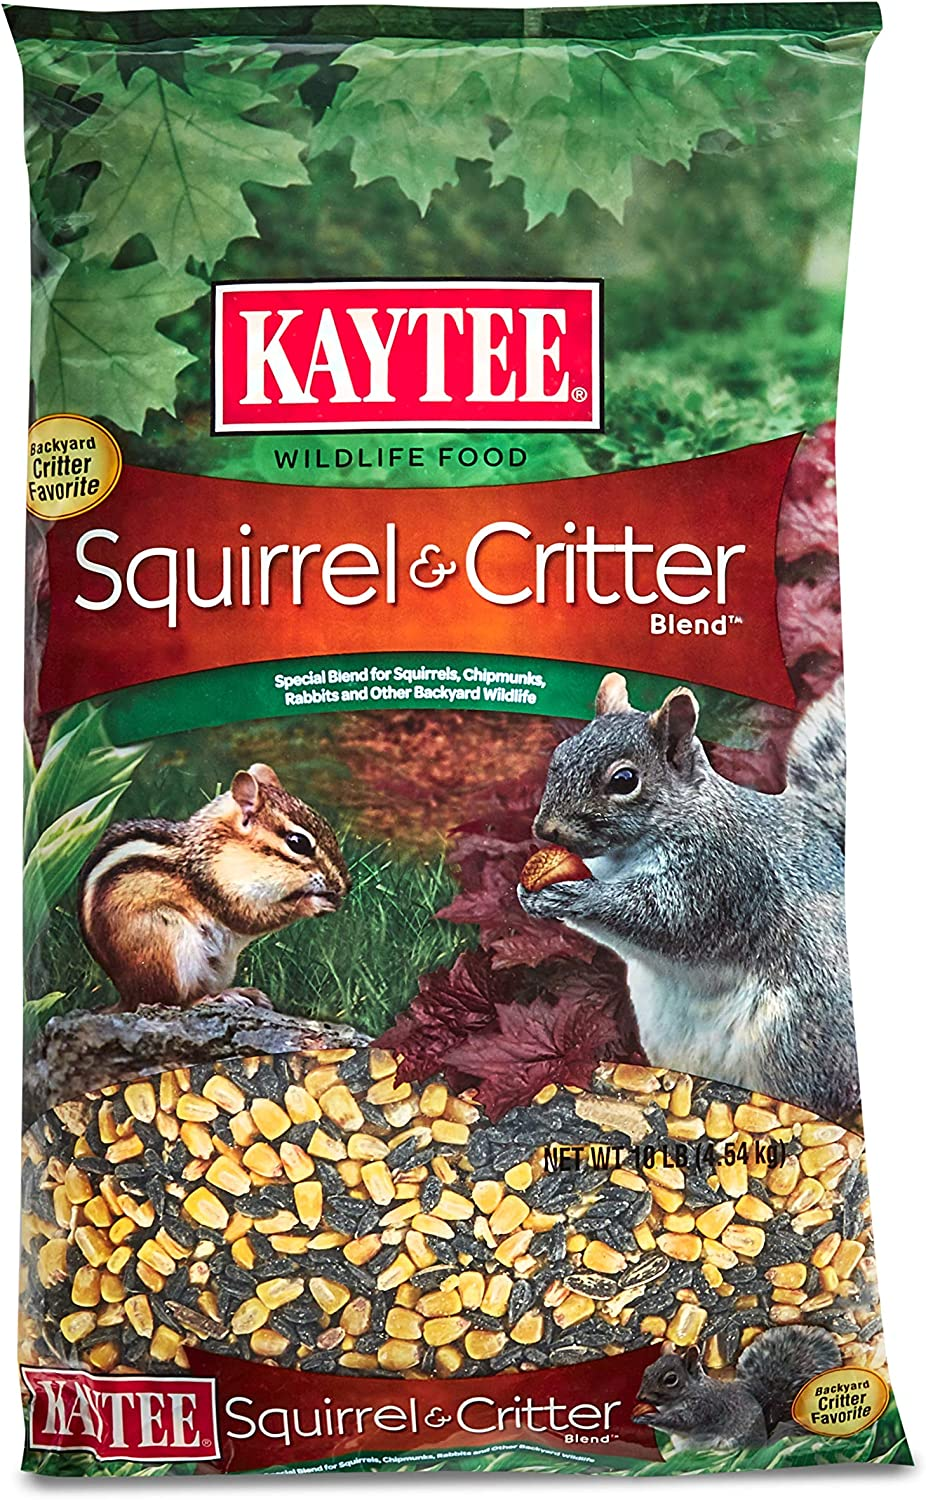 Kaytee Squirrel and Critter Blend